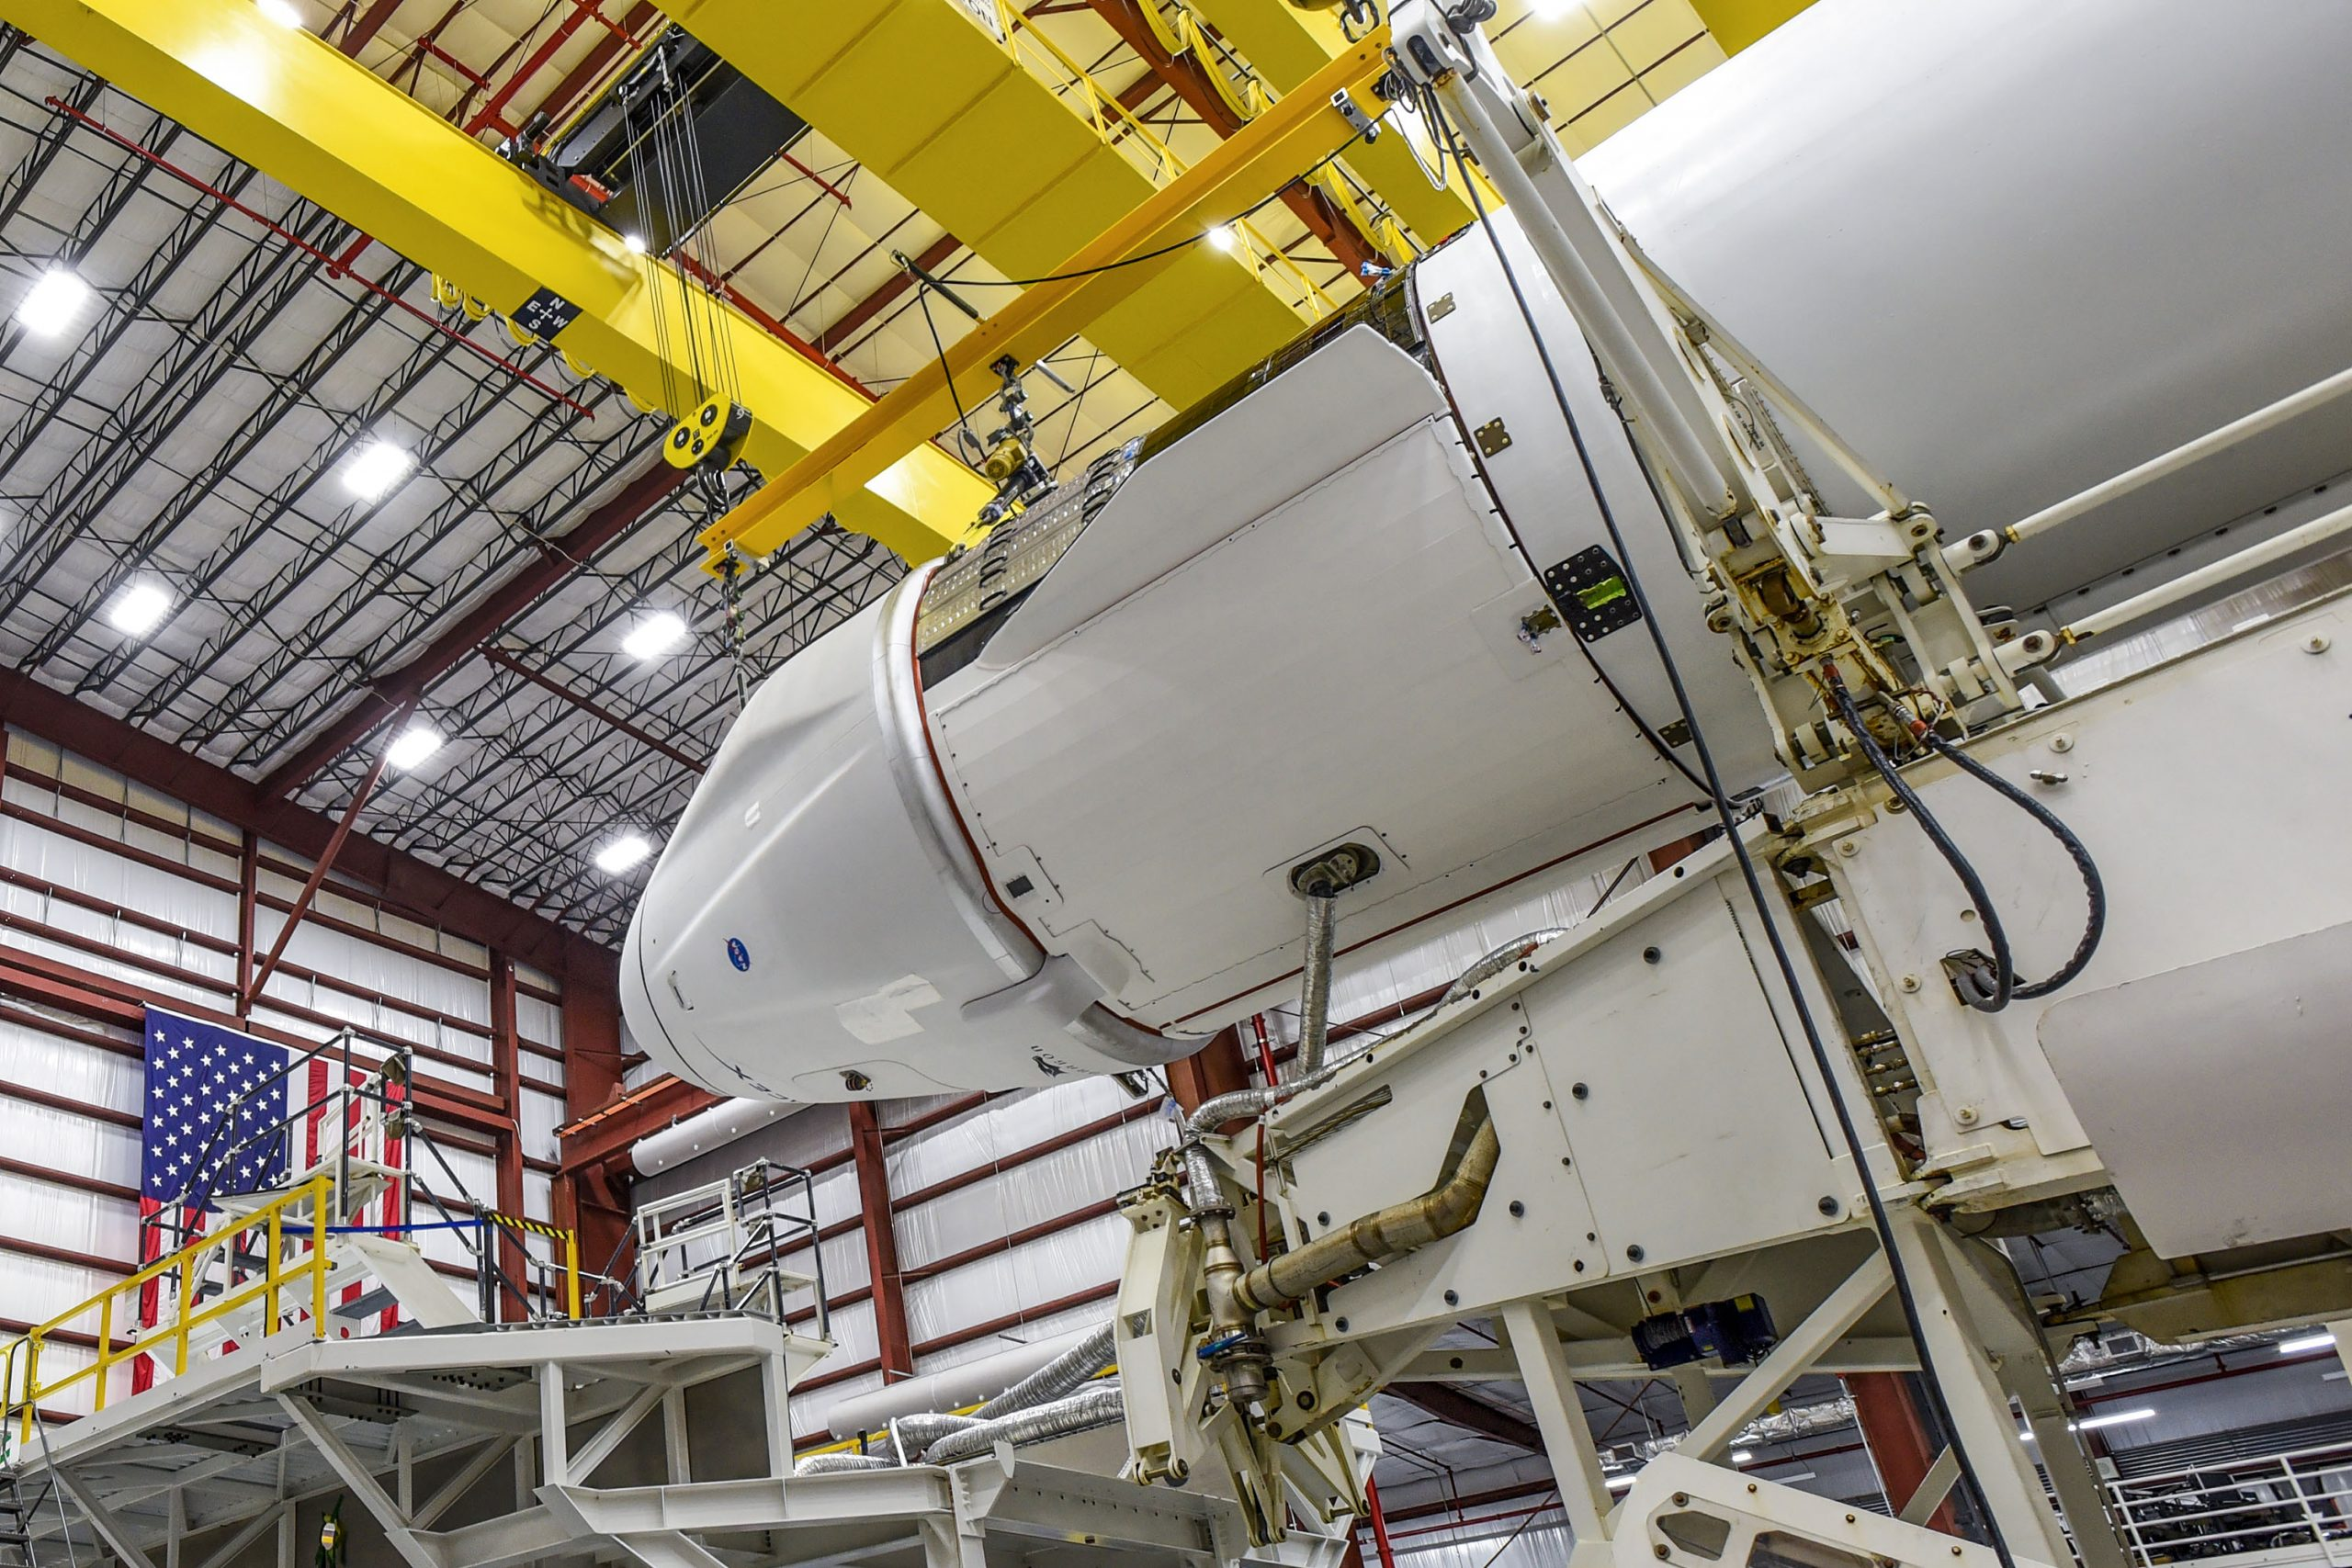 The Dragon spacecraft and Falcon 9 rocket are seen inside the hangar at Kennedy Space Center in Florida.